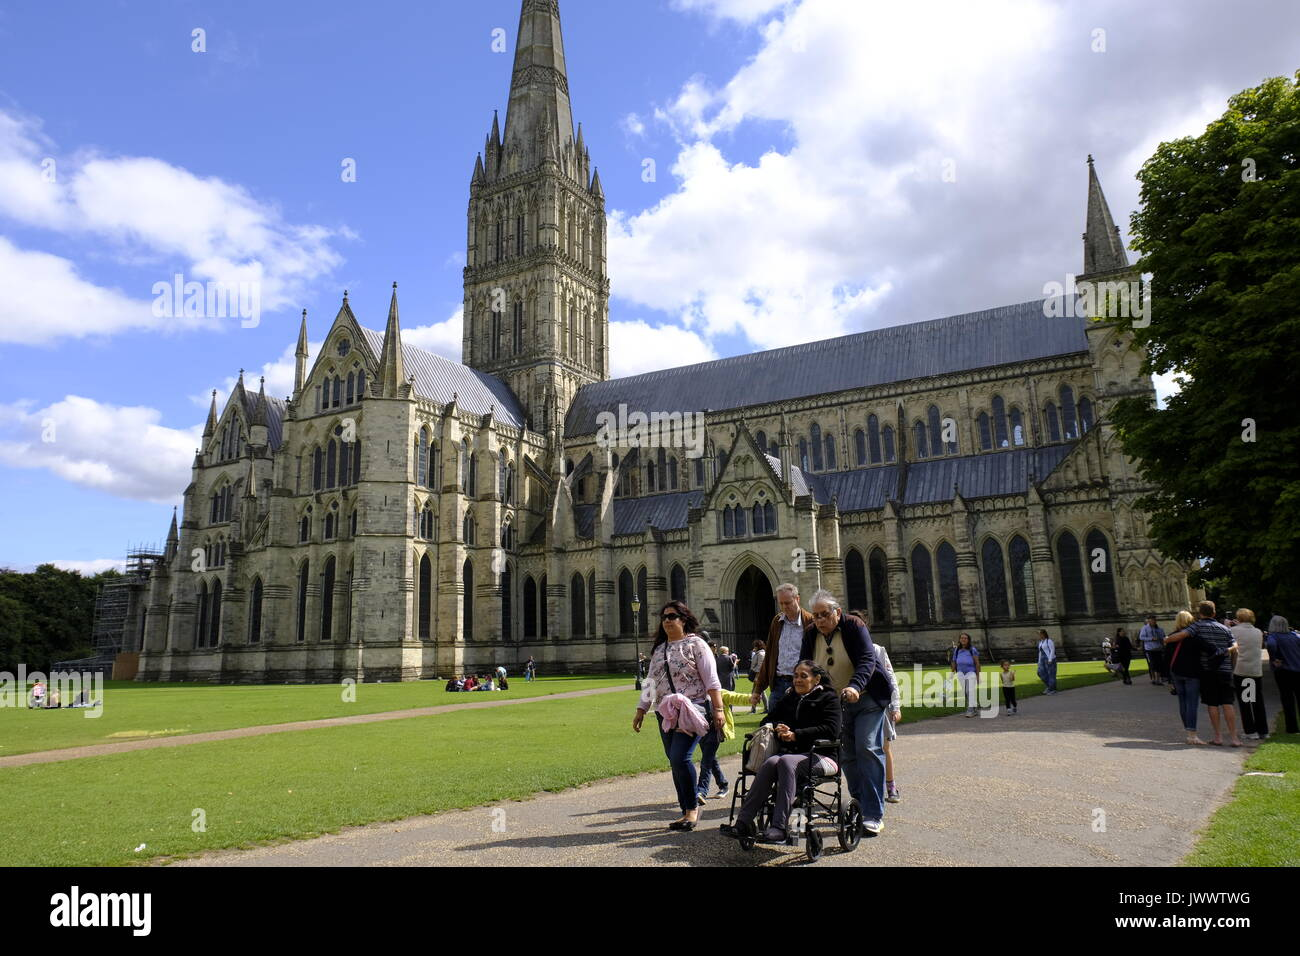 Family with disabled member visiting Salisbury Cathedral, Wiltshire,UK - Stock Image